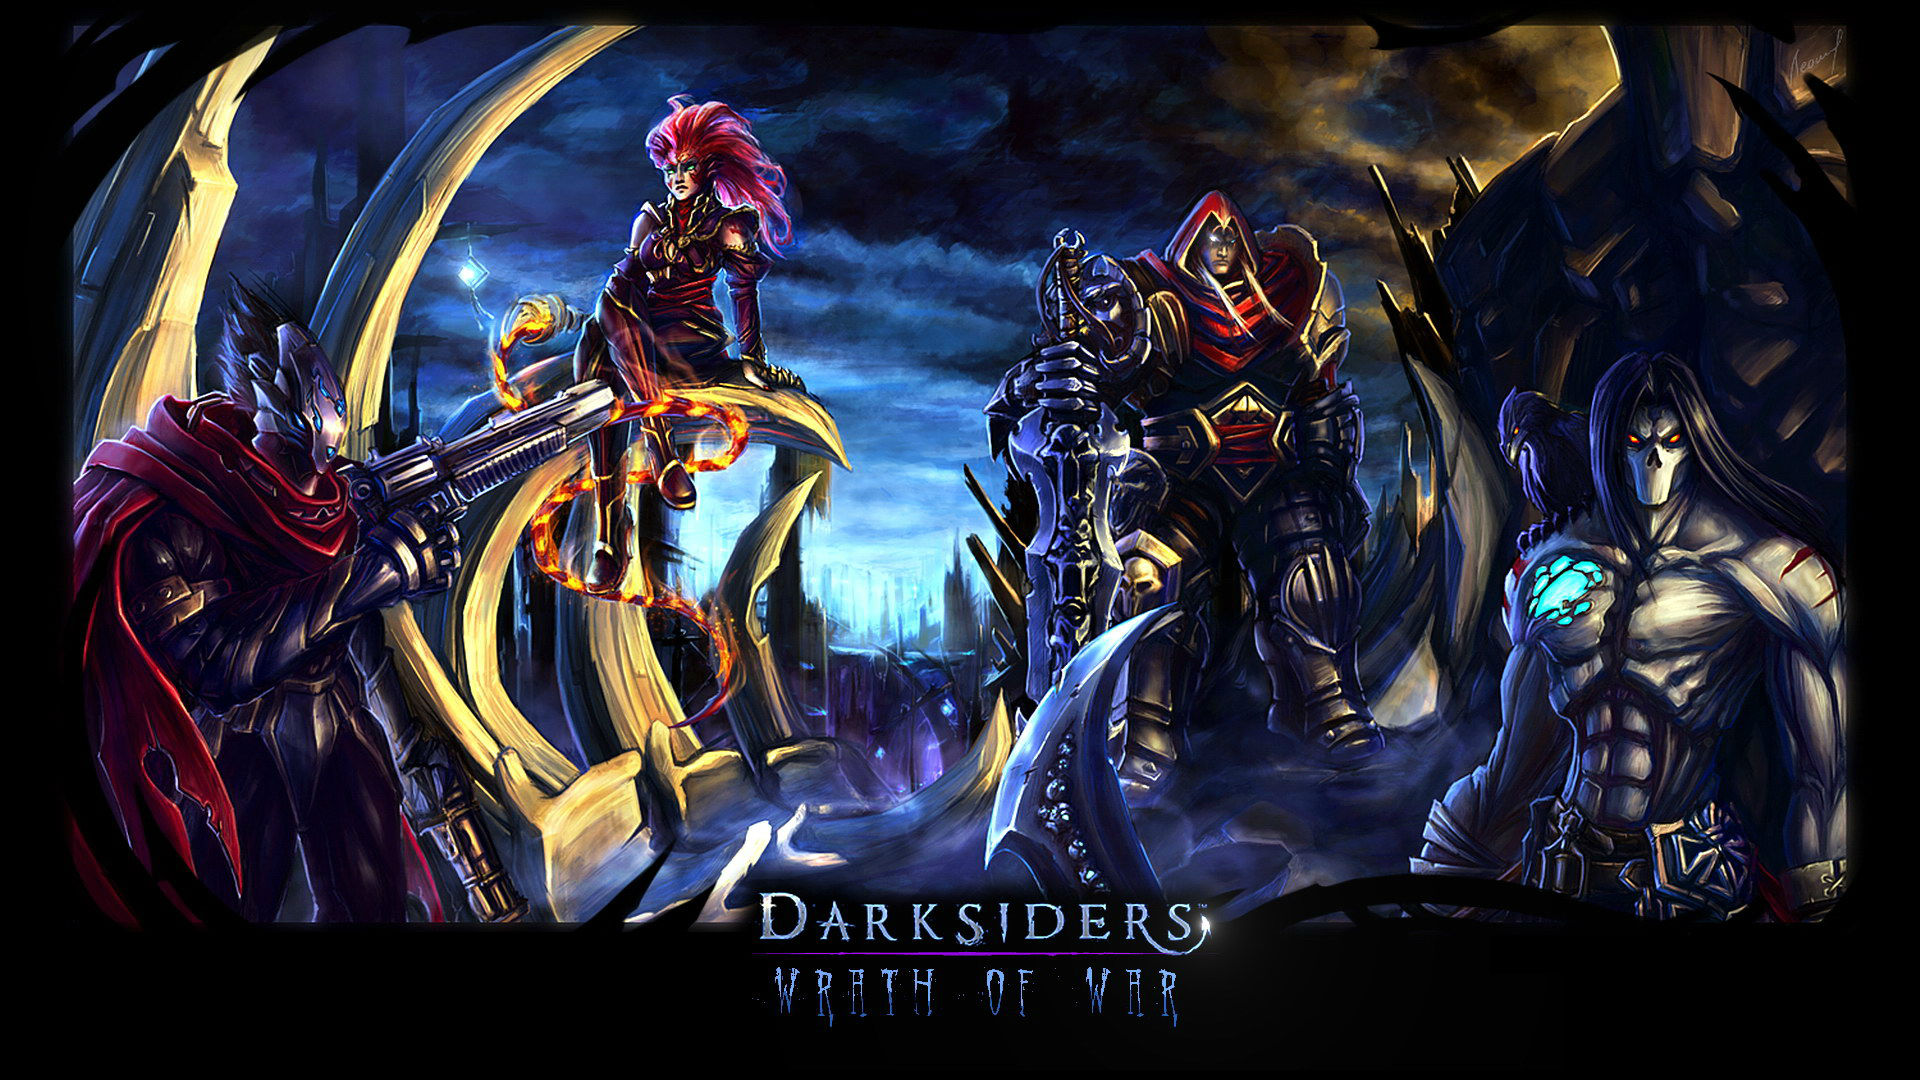 Some Sweet Darksiders Wallpapers   Darksiders Dungeon 1920x1080